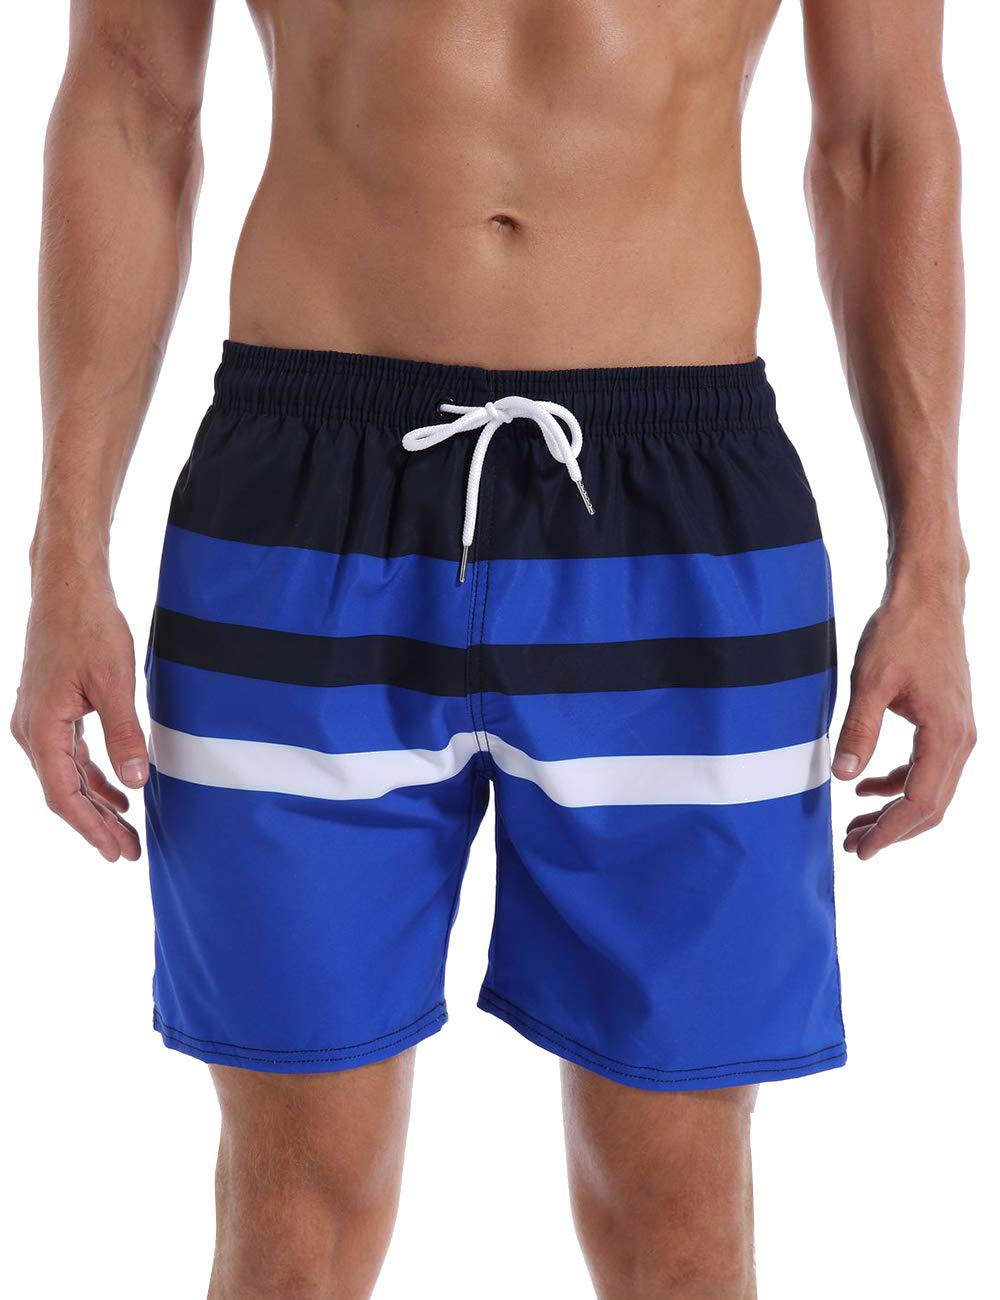 Men's Clothing Summer Brand Beach Shorts Men Swimsuit Swimwear Quick Dry Mens Board Shorts Male Bermudas Bathing Short Sportswear Inside Liner Shrink-Proof